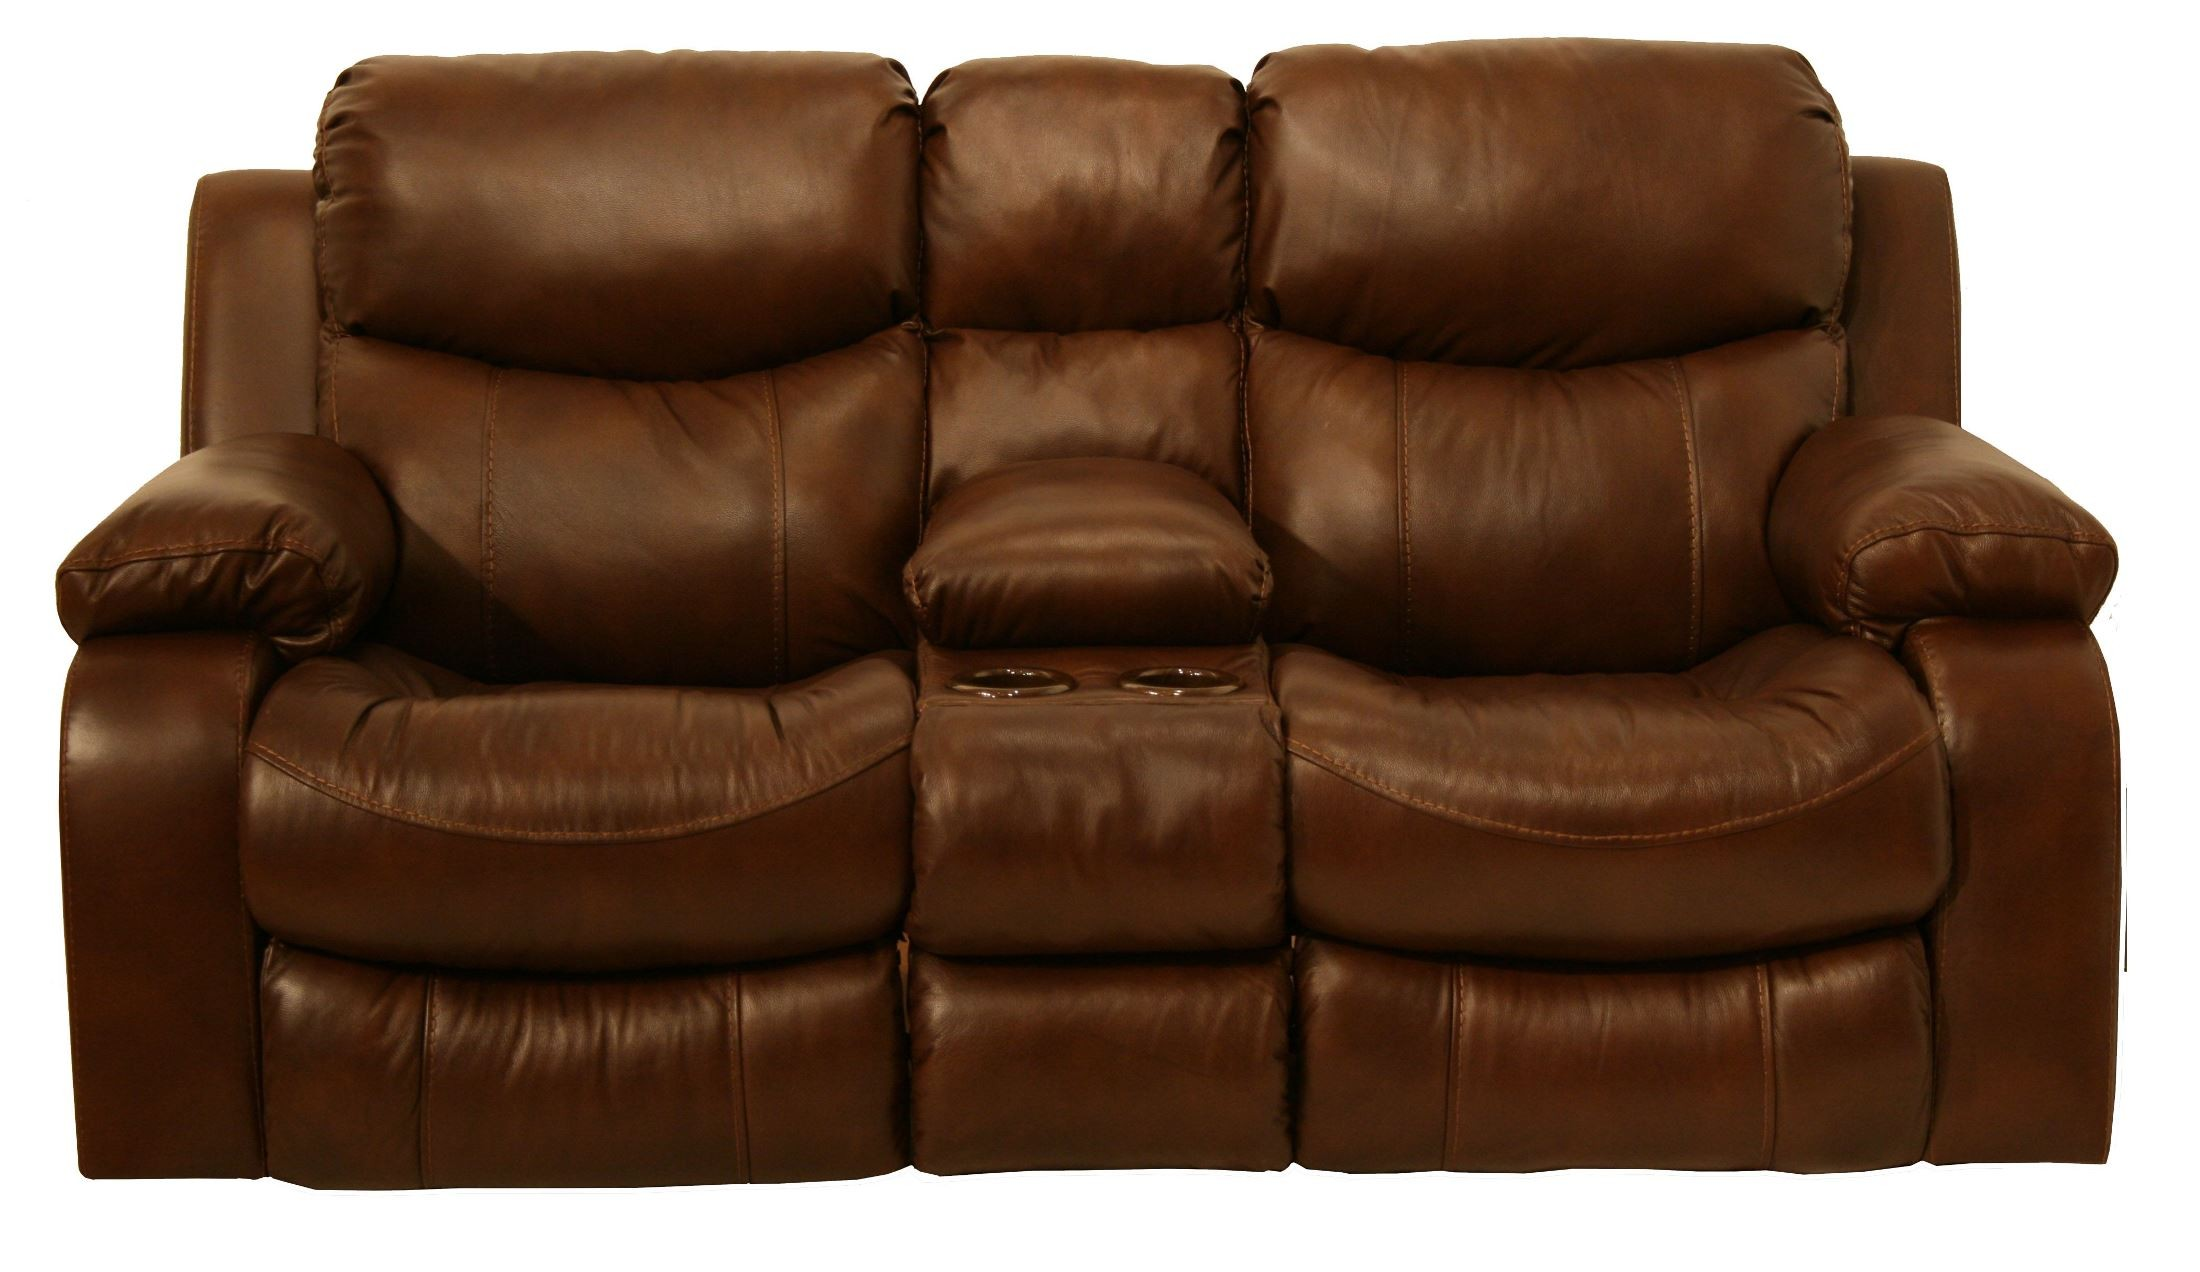 Dallas tobacco power reclining loveseat with console from catnapper 64959100000000000 Catnapper loveseat recliner